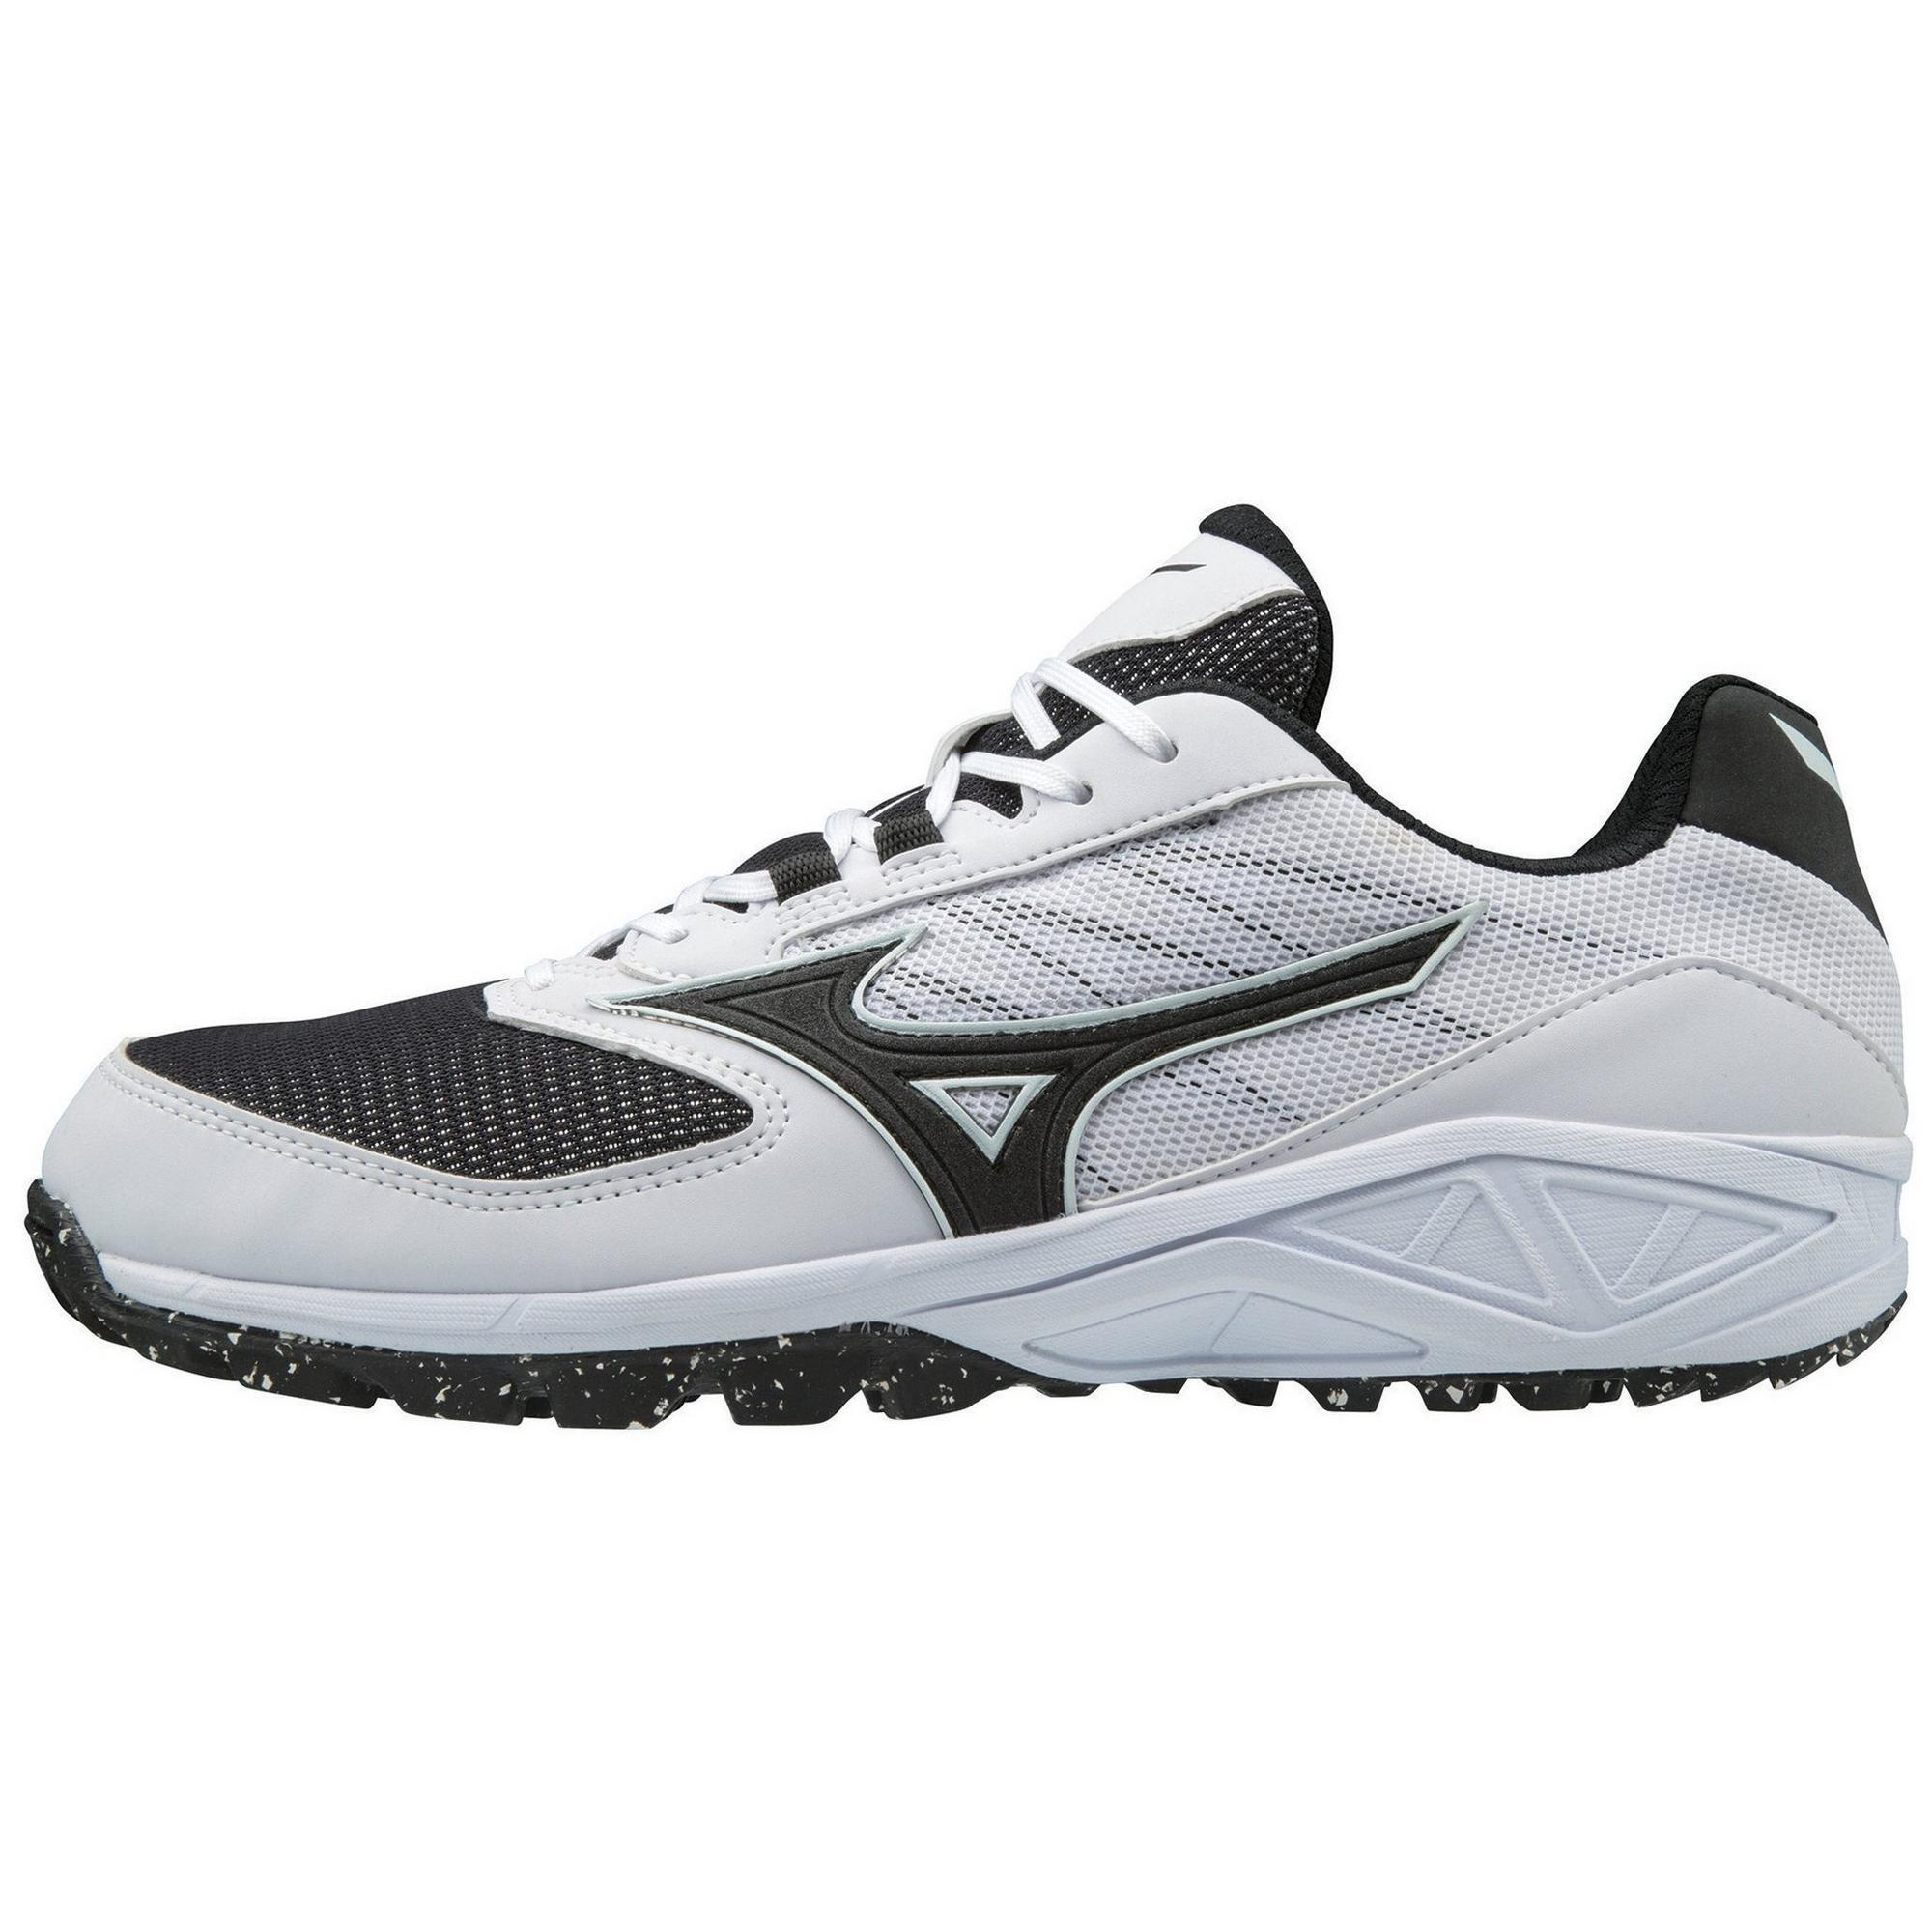 tenis mizuno wave legend 4 pre�o walmart one in japan